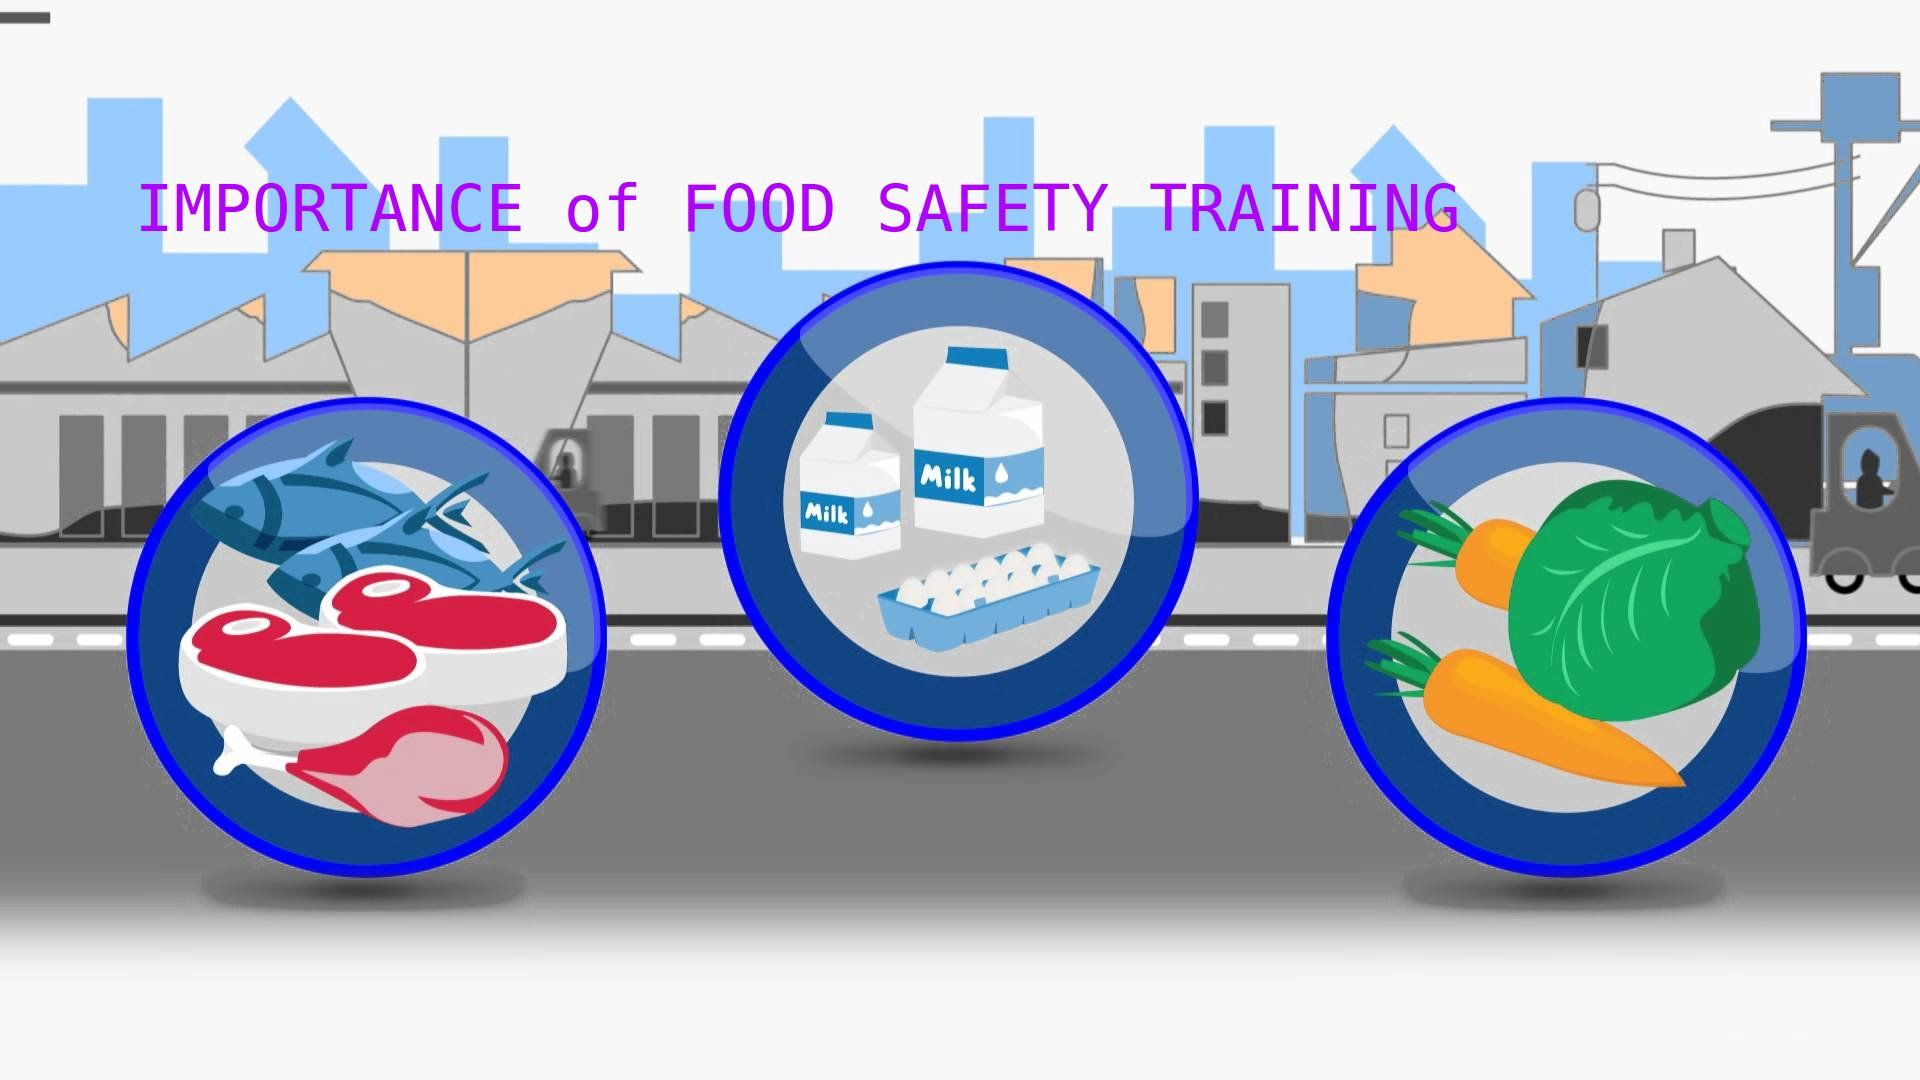 Importance Of Food Safety Training 1 Reduce The Risk Of Food Poisoning 2 Less Wastage And Longer Food Safety Training Importance Of Food Safety Training